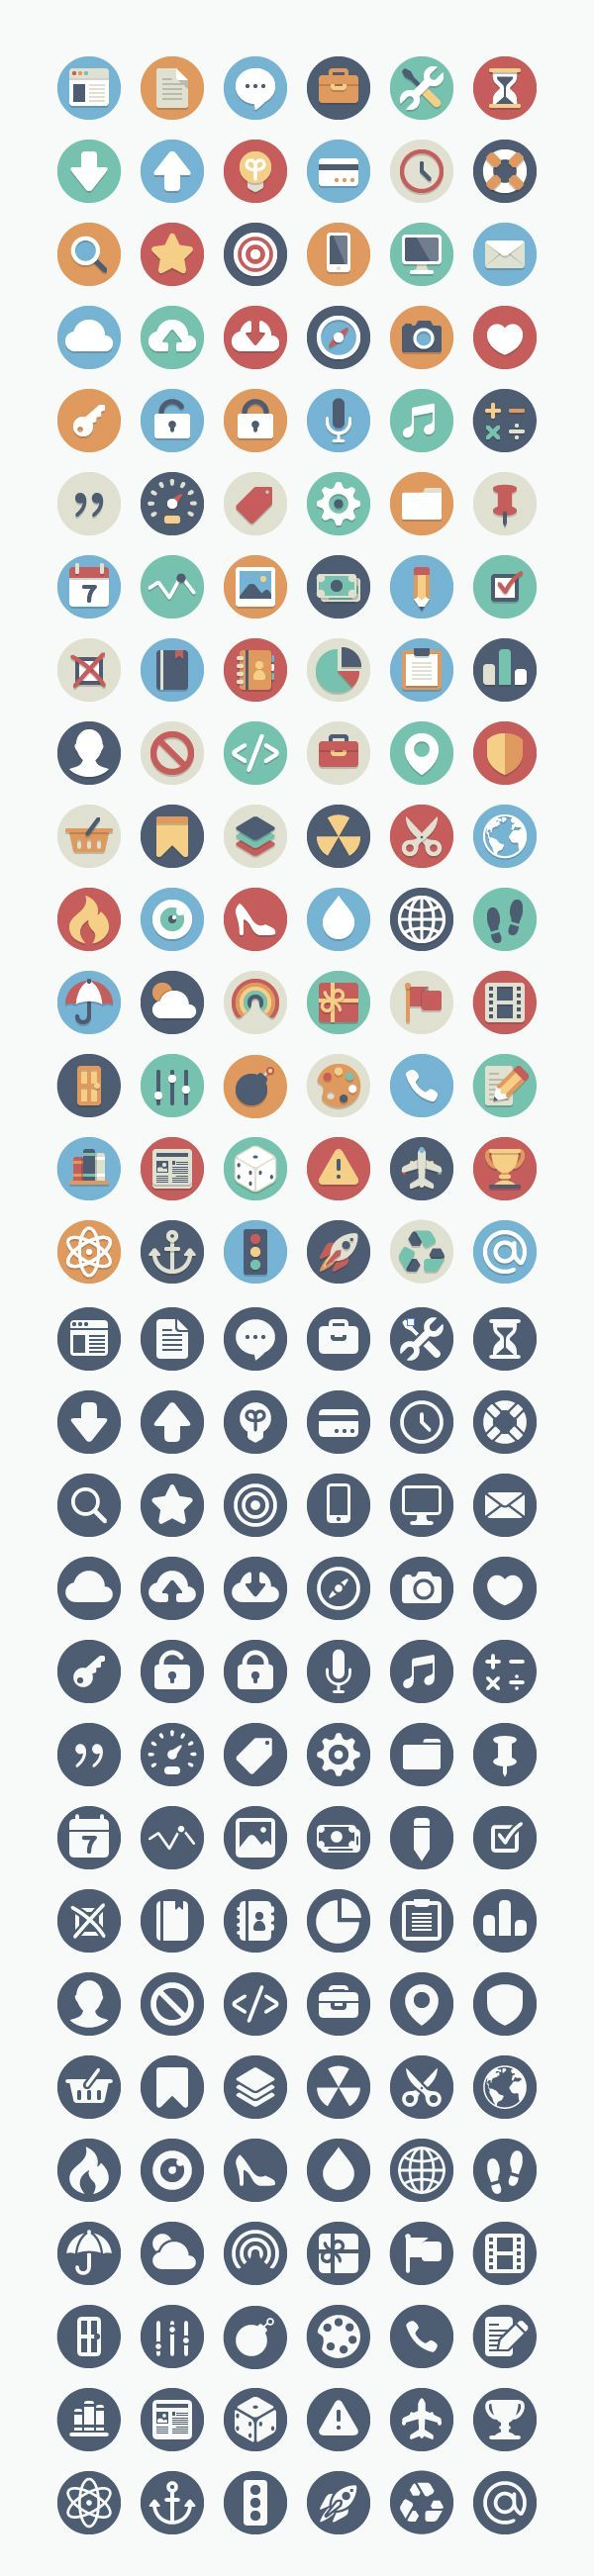 Beautiful Flat Icons Download 180 Free And Open Source